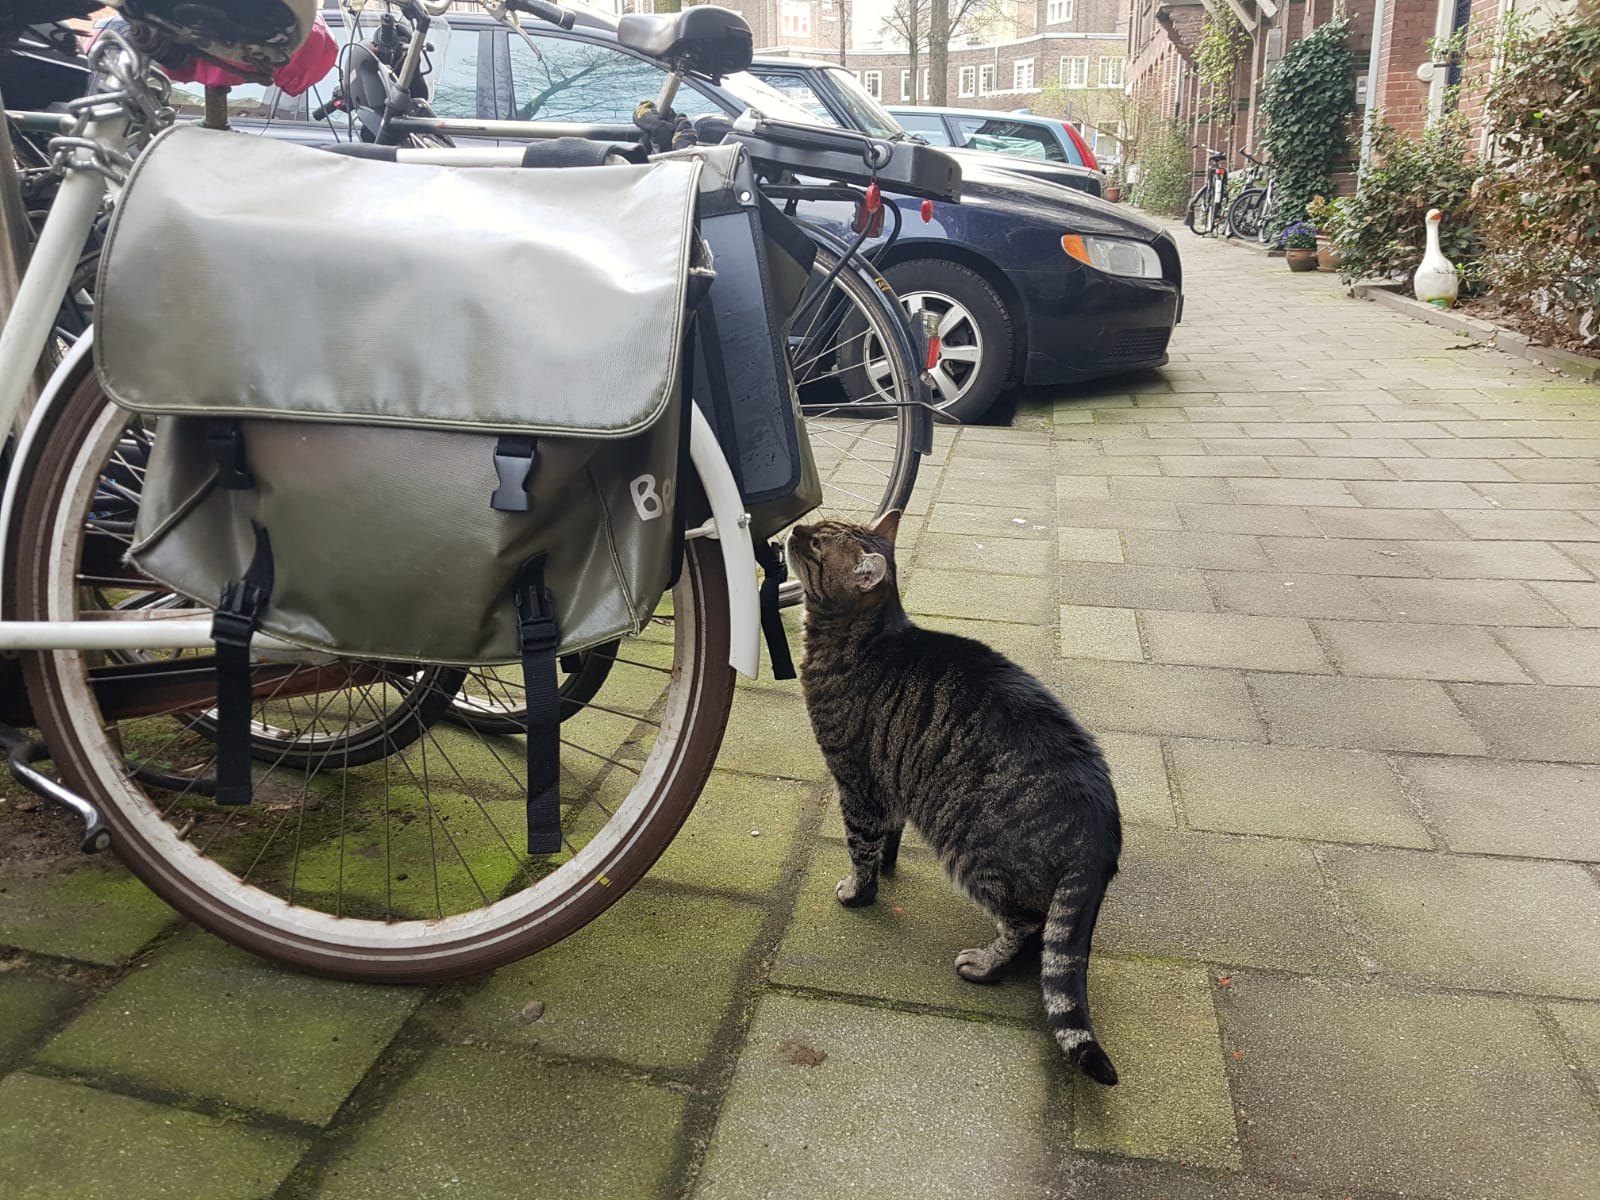 Cats and bicycles in Amsterdam